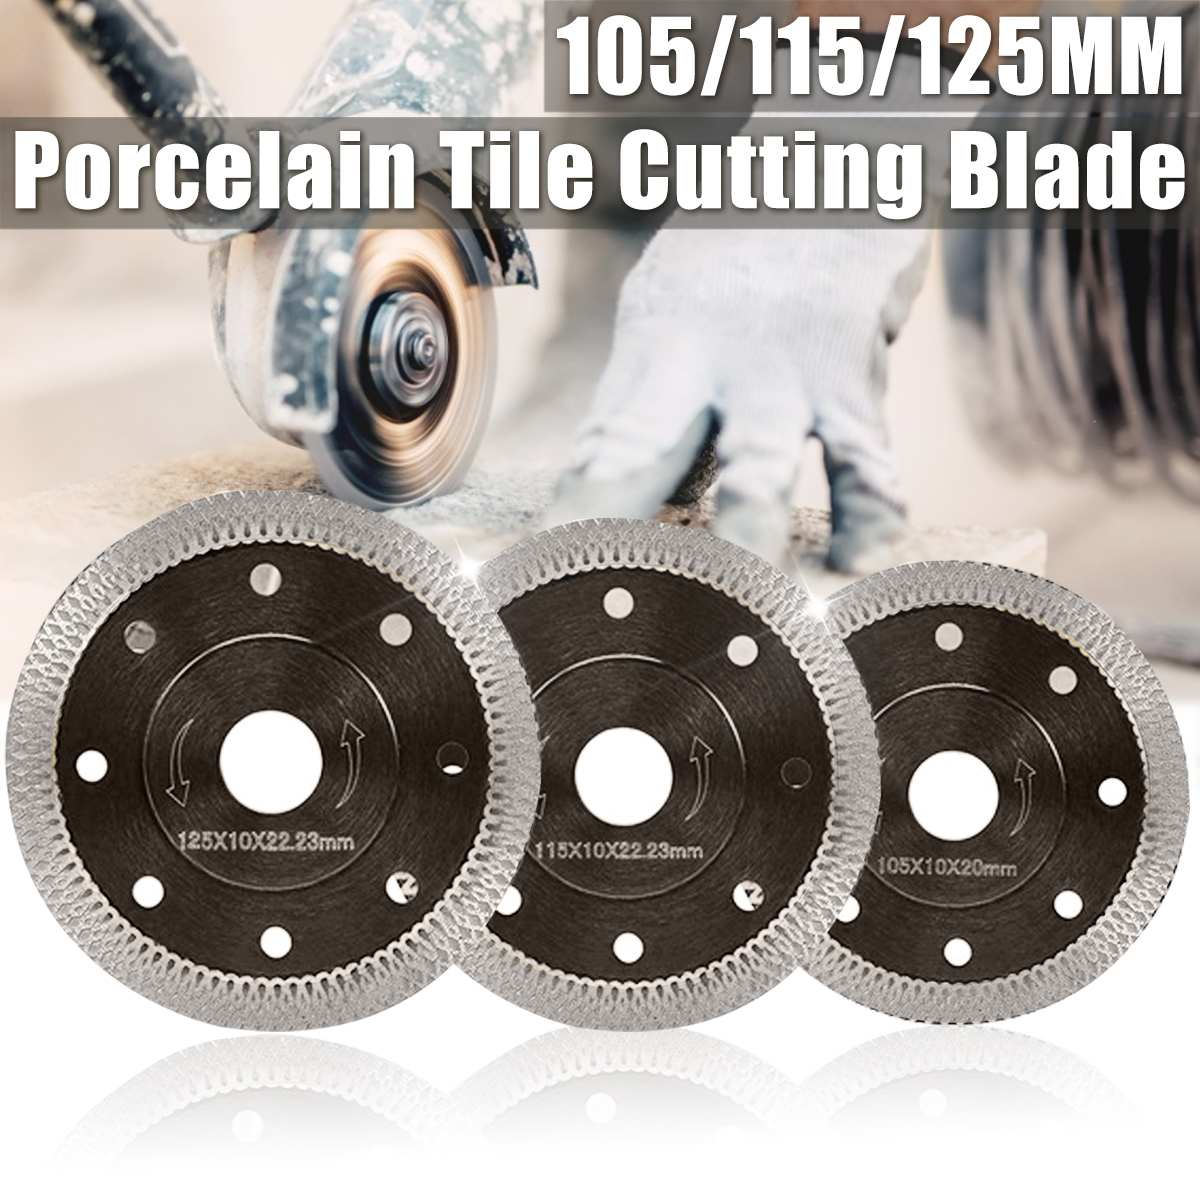 105/115/125mm Marble Cutting Blades Angle Grinder Blade Diamond Saw Blades Porcelain Tile Cutting Blades Cutting Wheel Marble